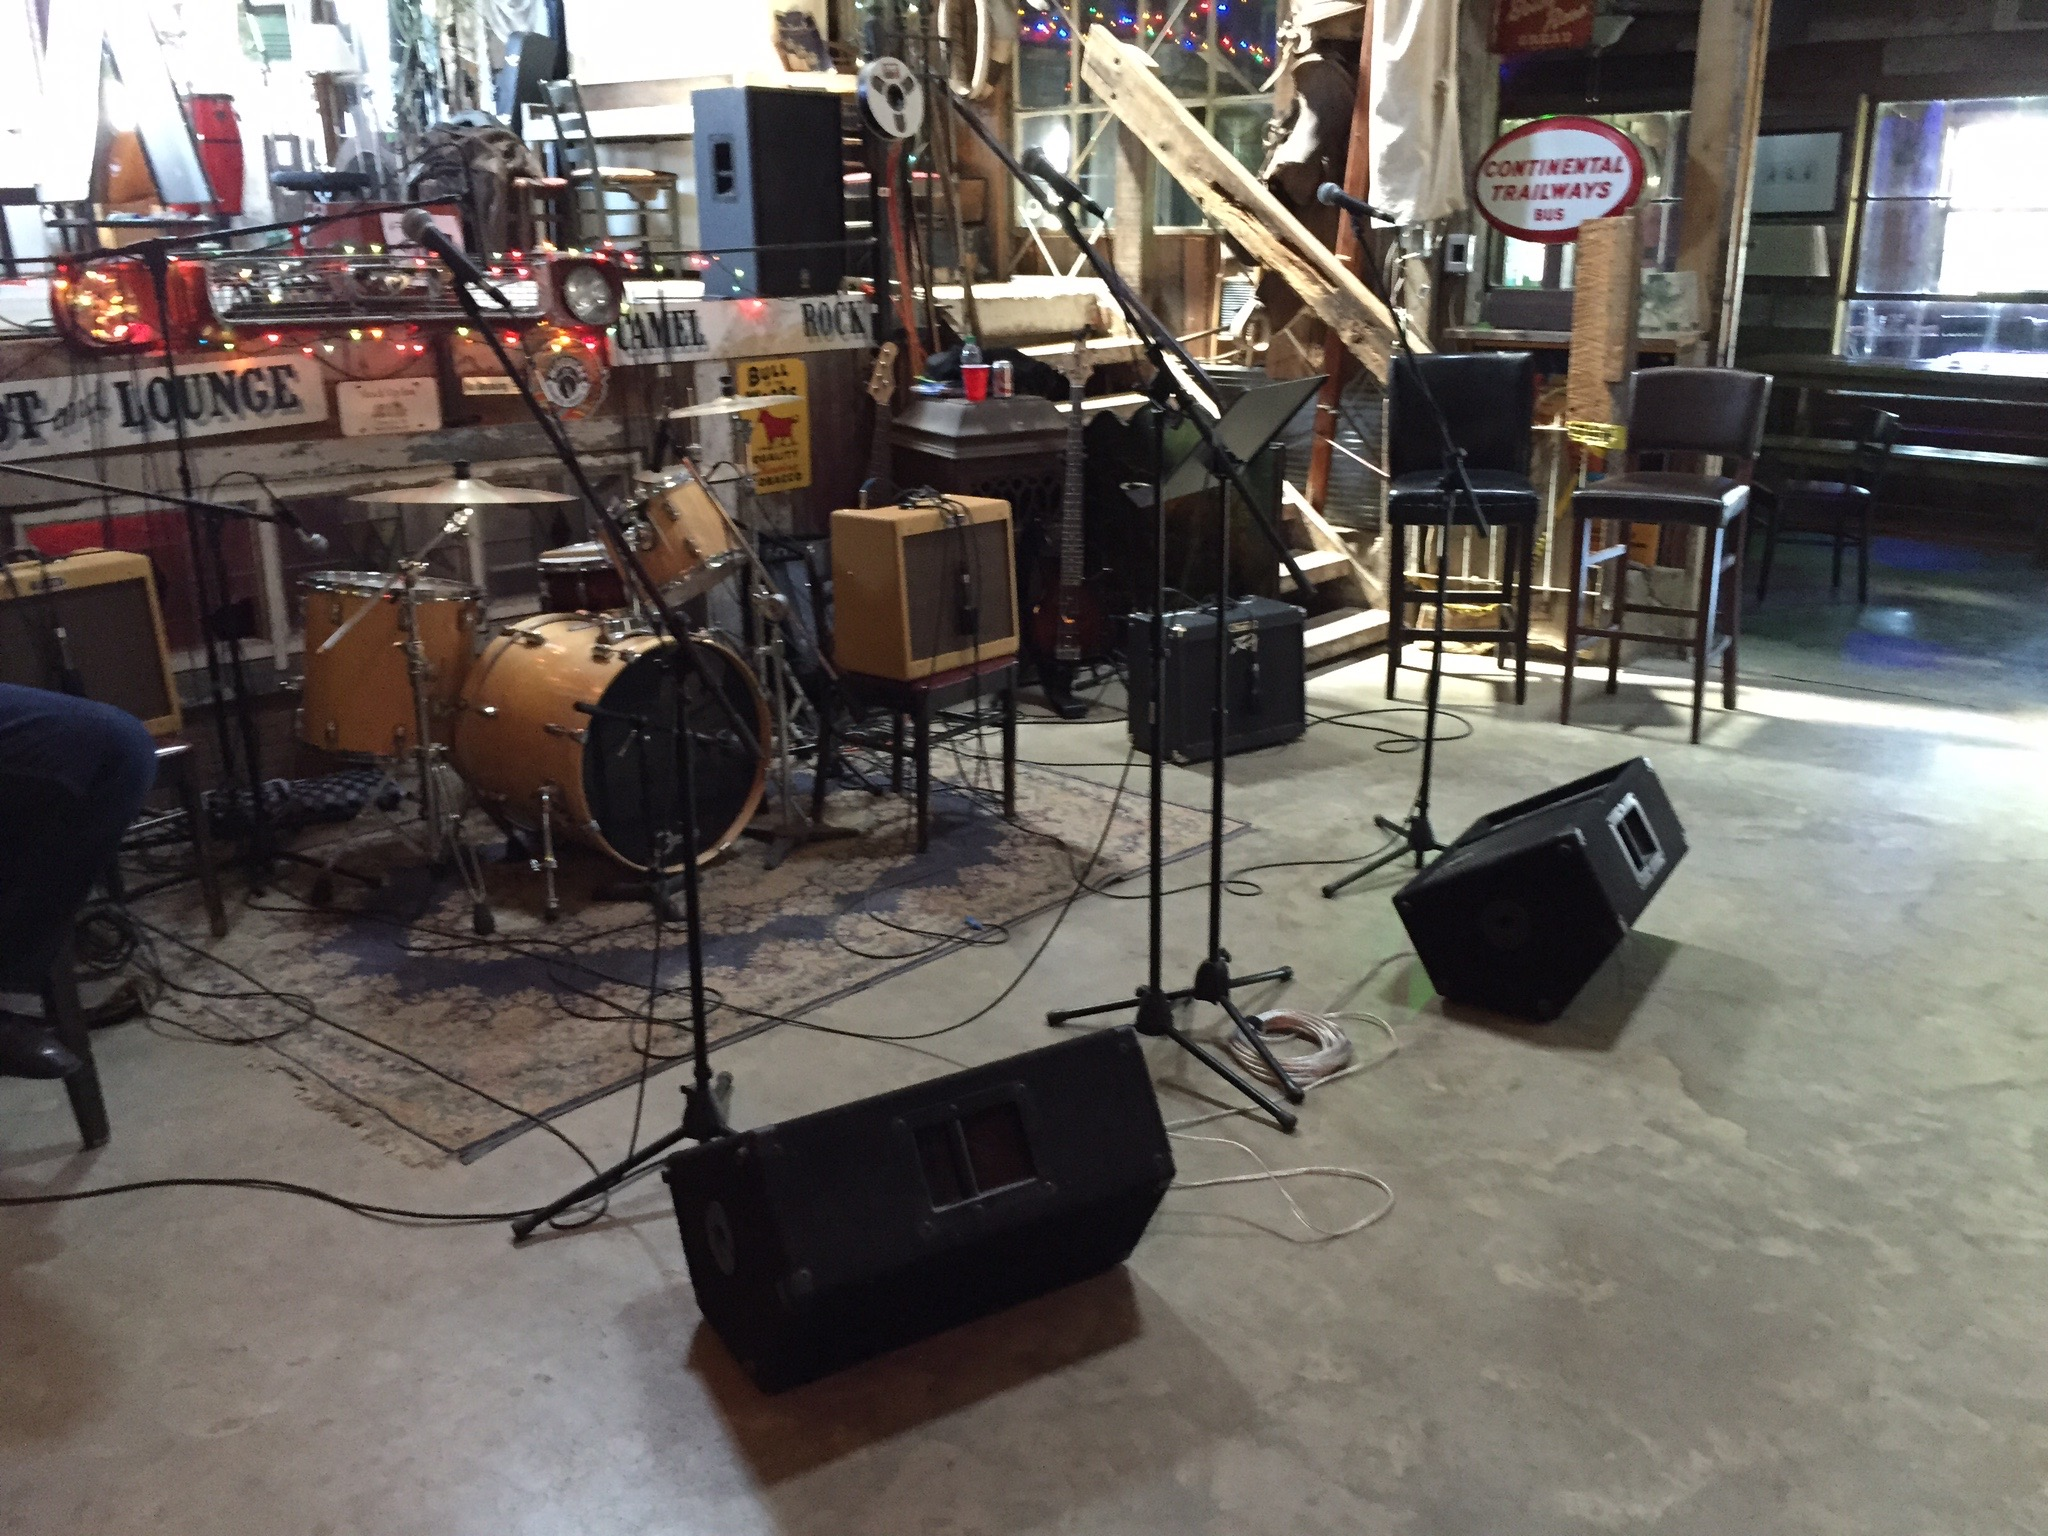 Recording day setup, Clarksdale MS